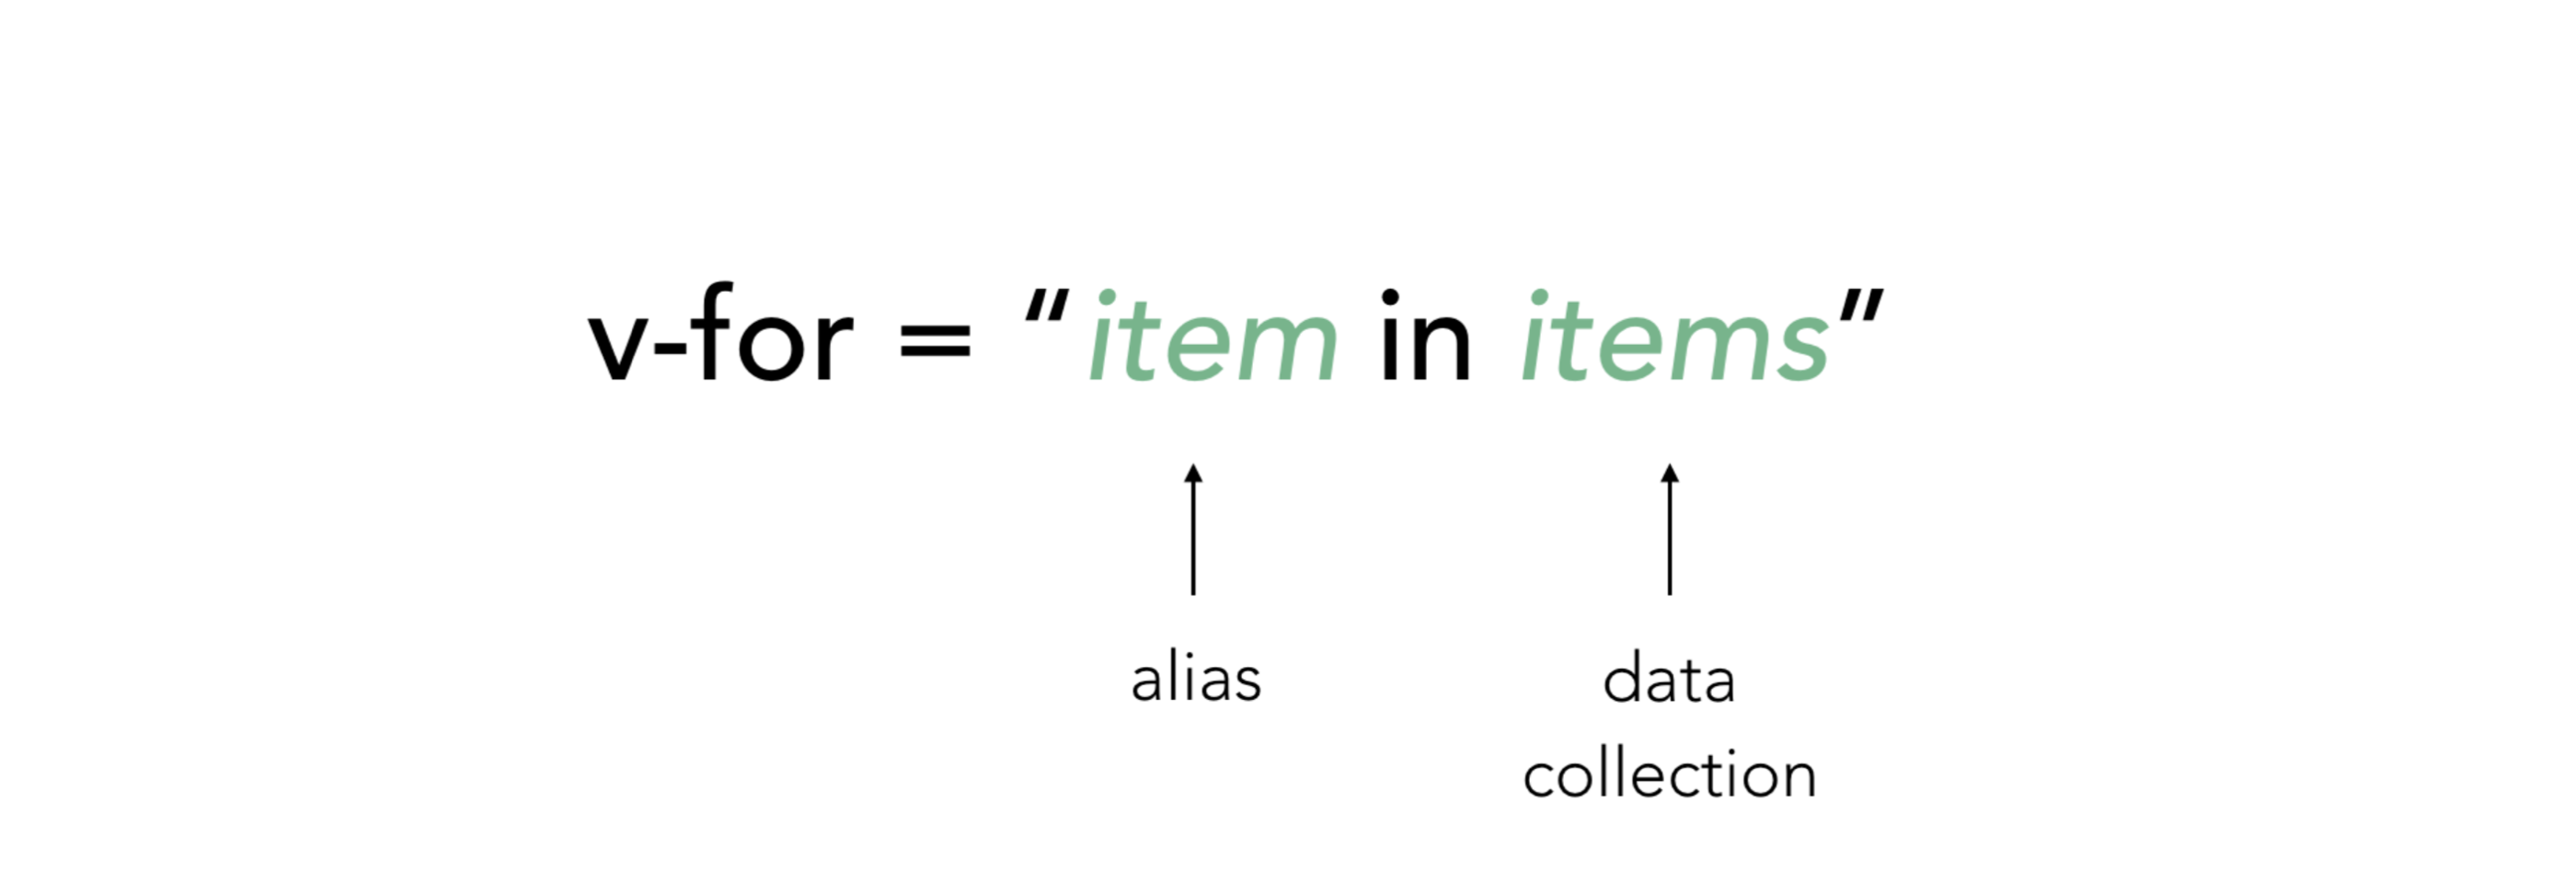 A visual showing a Vue for directive of v-for equals item in items, where item is the alias and items is the data collection.